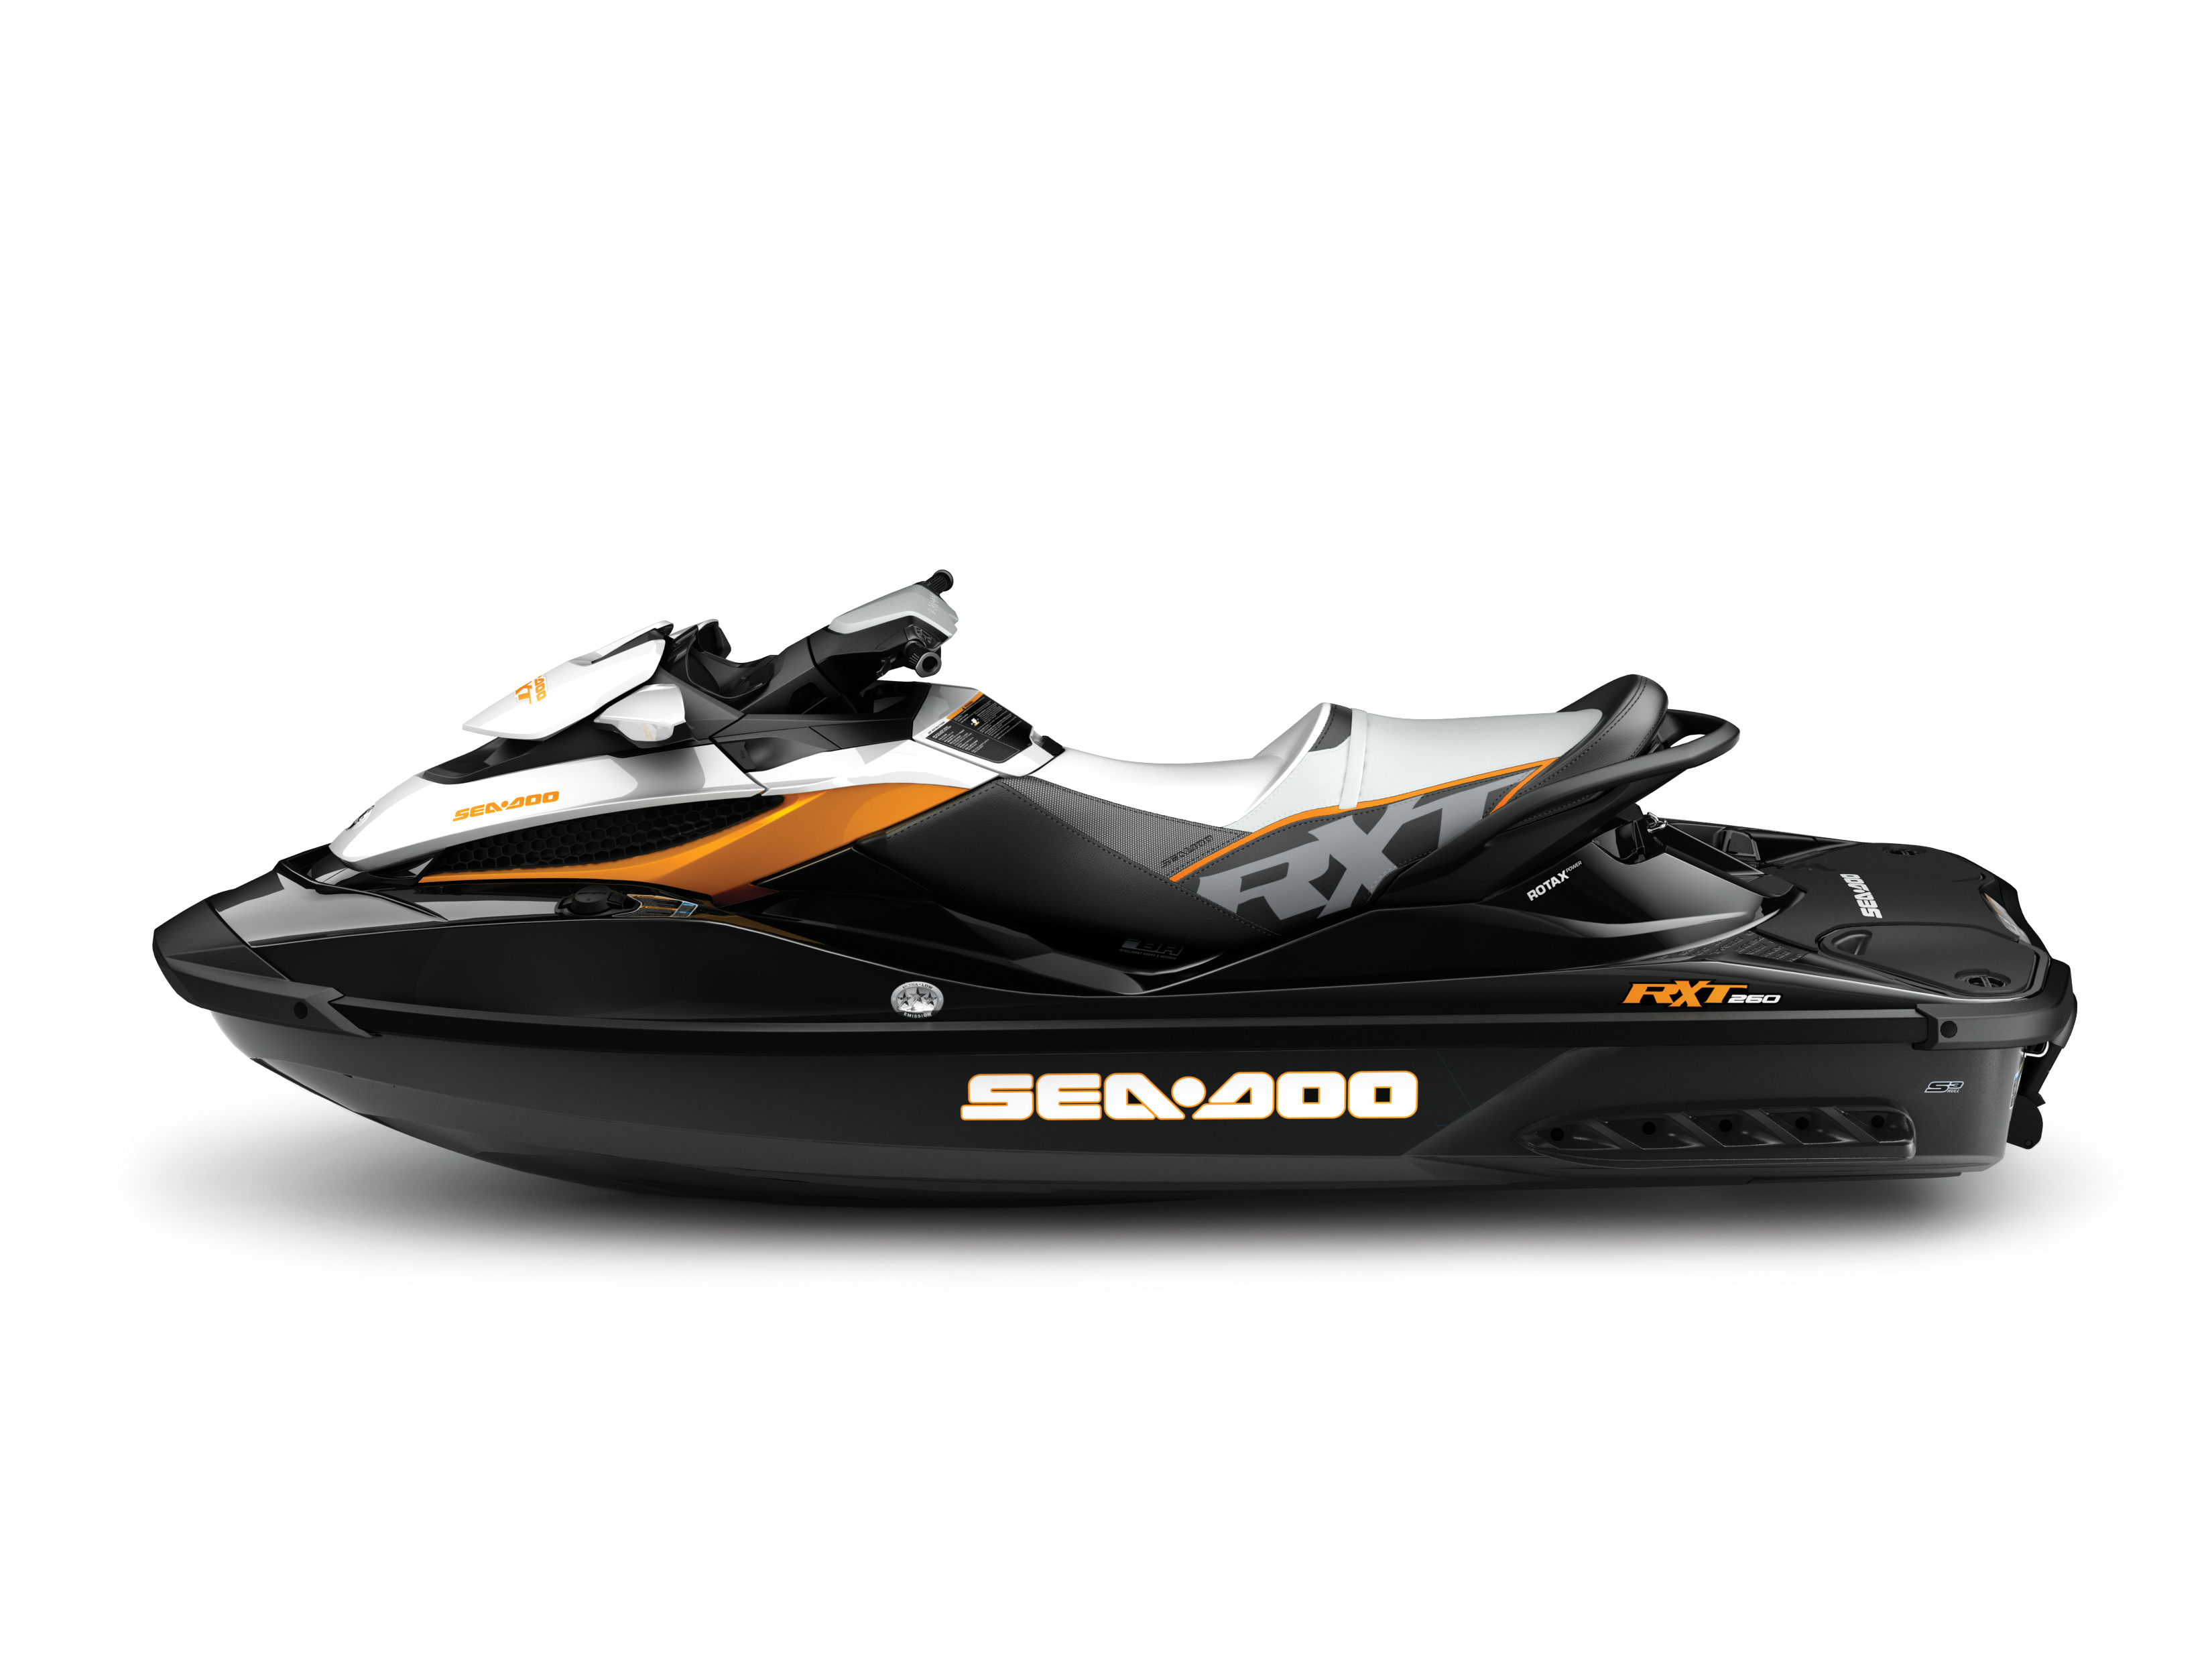 ... 2014 SEA-DOO RXT 260 - STUDIO - Profile